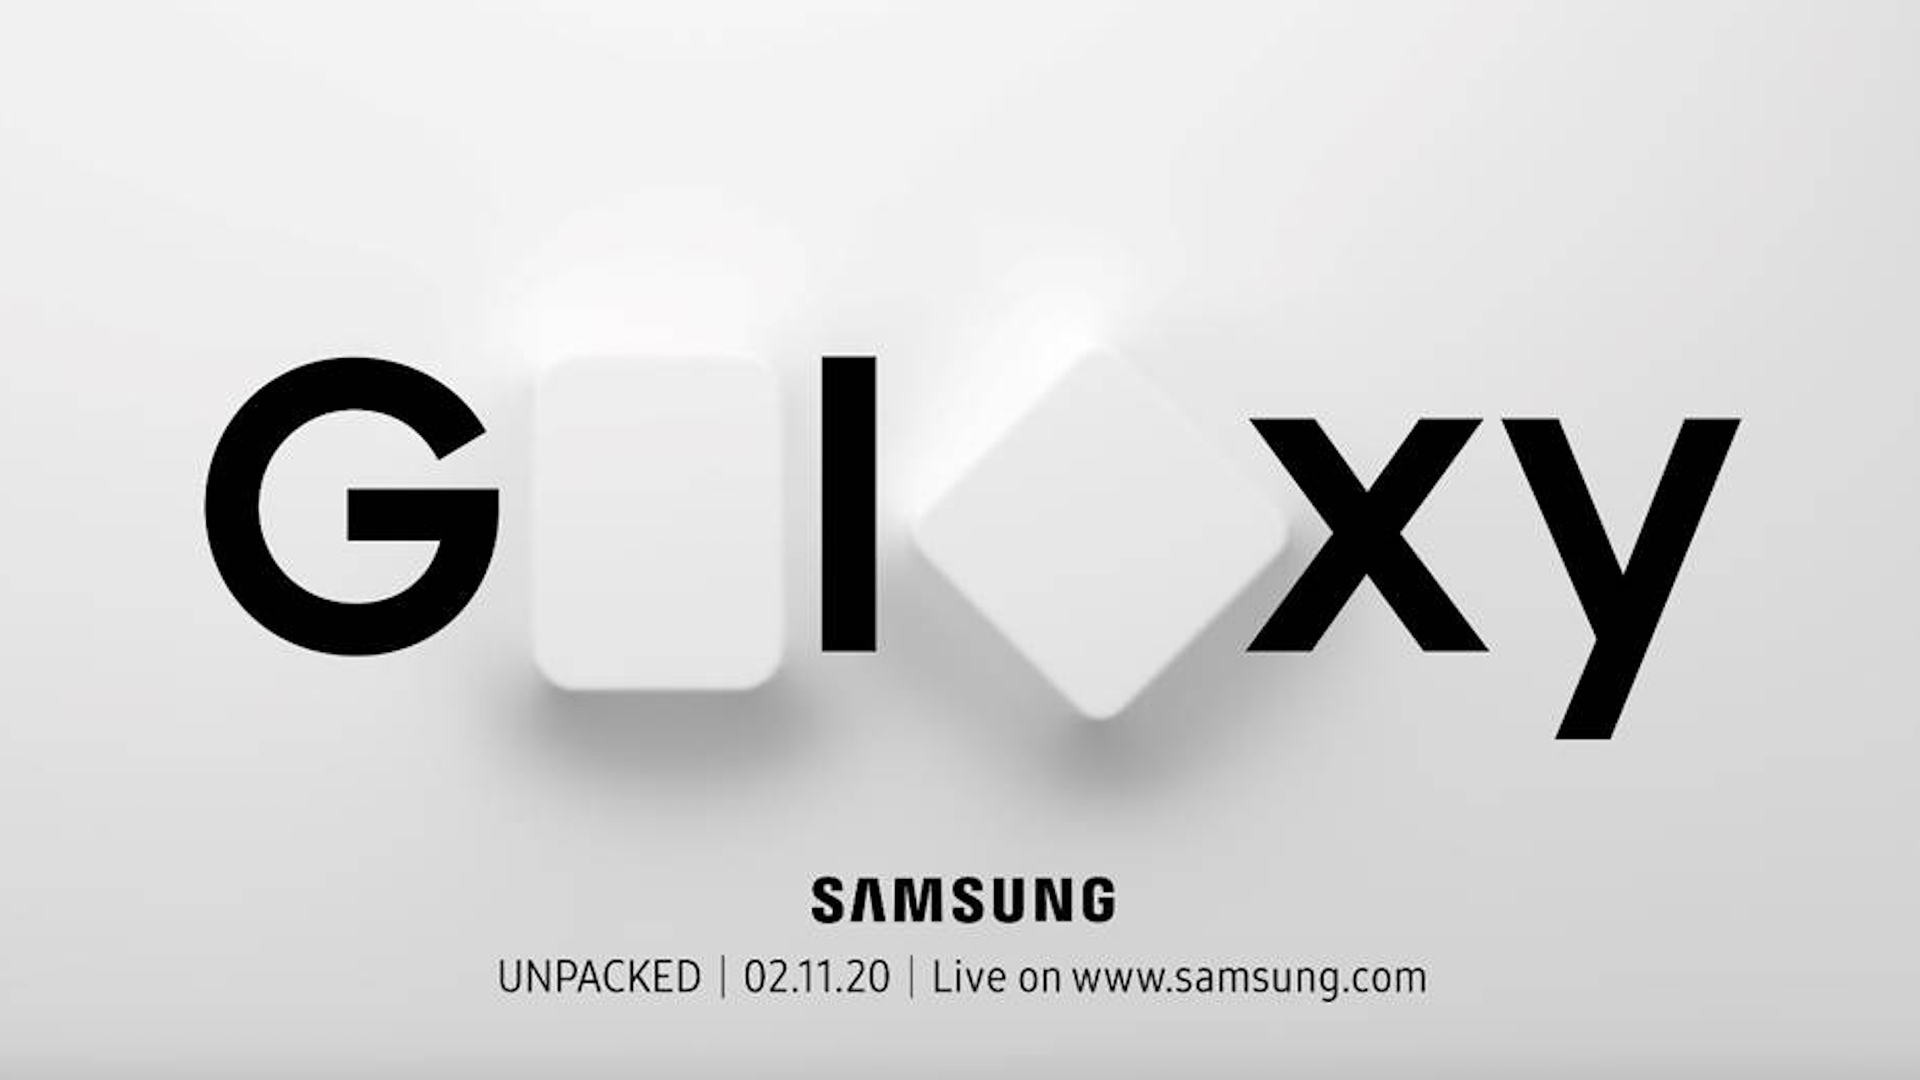 A teaser for Samsung's Feb. 11 Galaxy Unpacked event